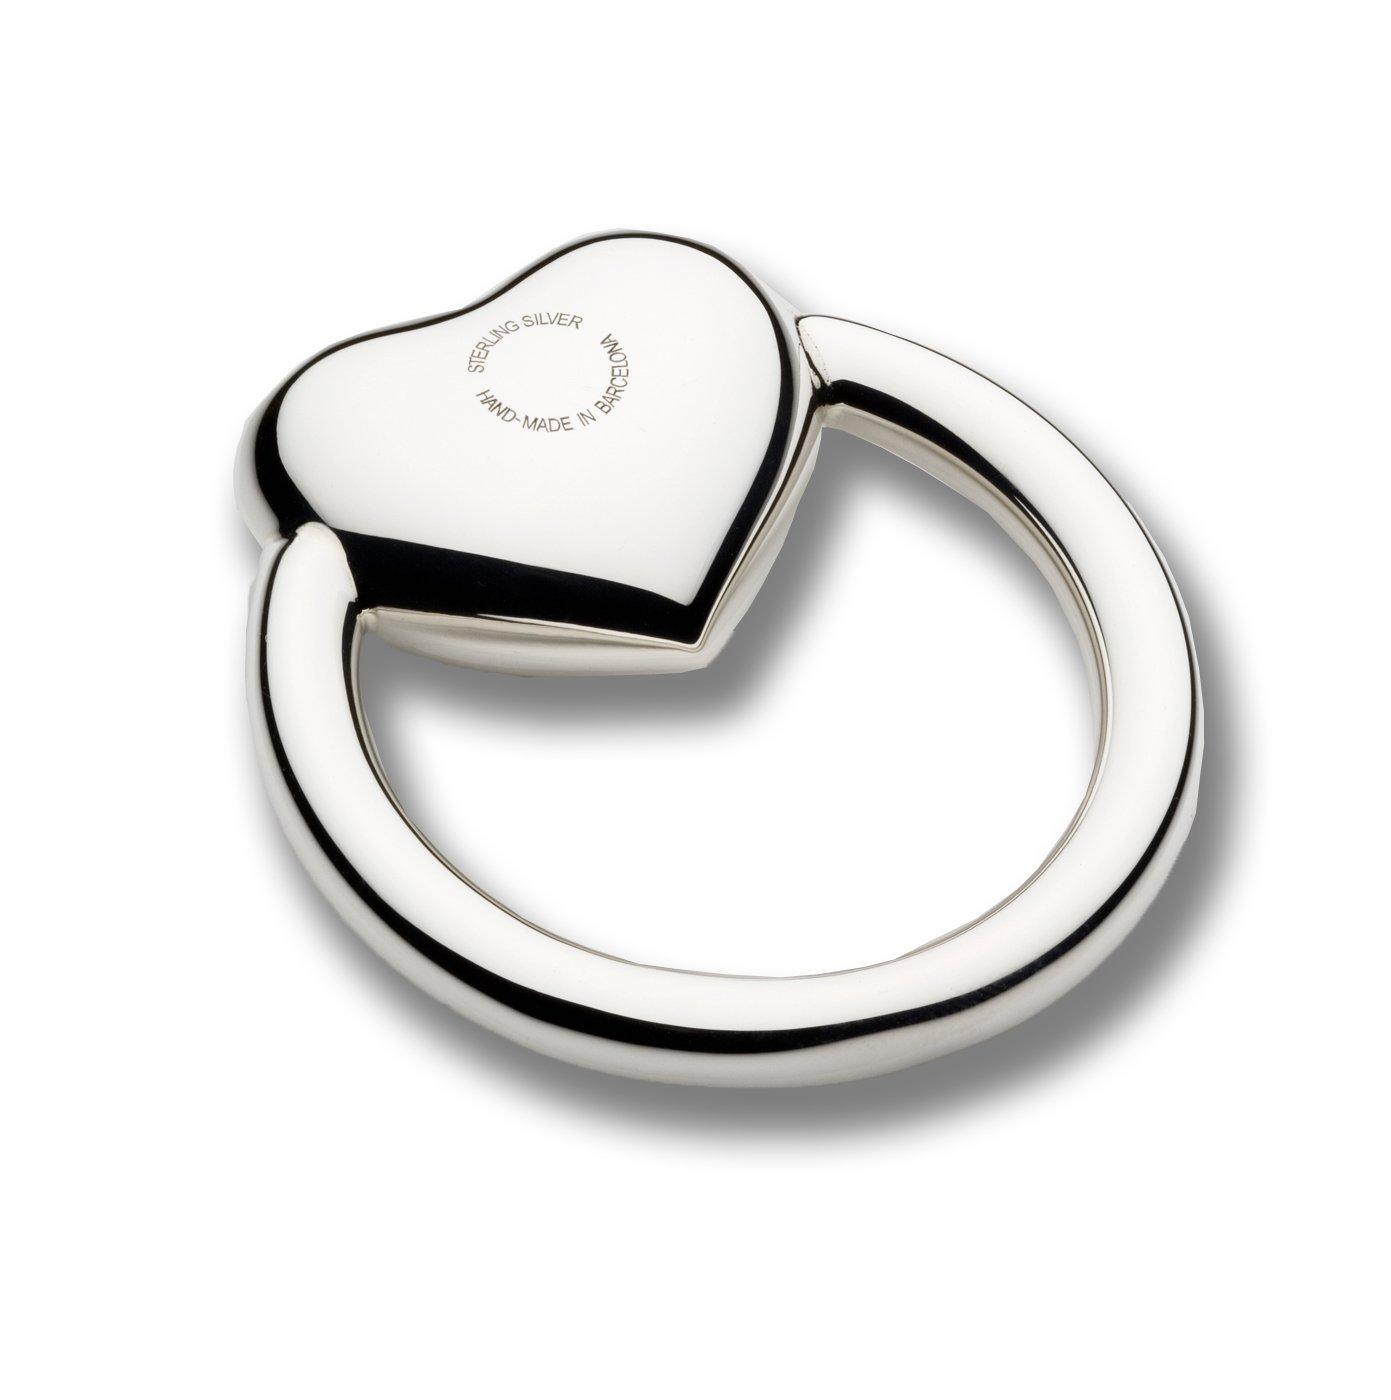 Cunill Heart Ring Baby Rattle, 2-Inch, Sterling Silver by Cunill